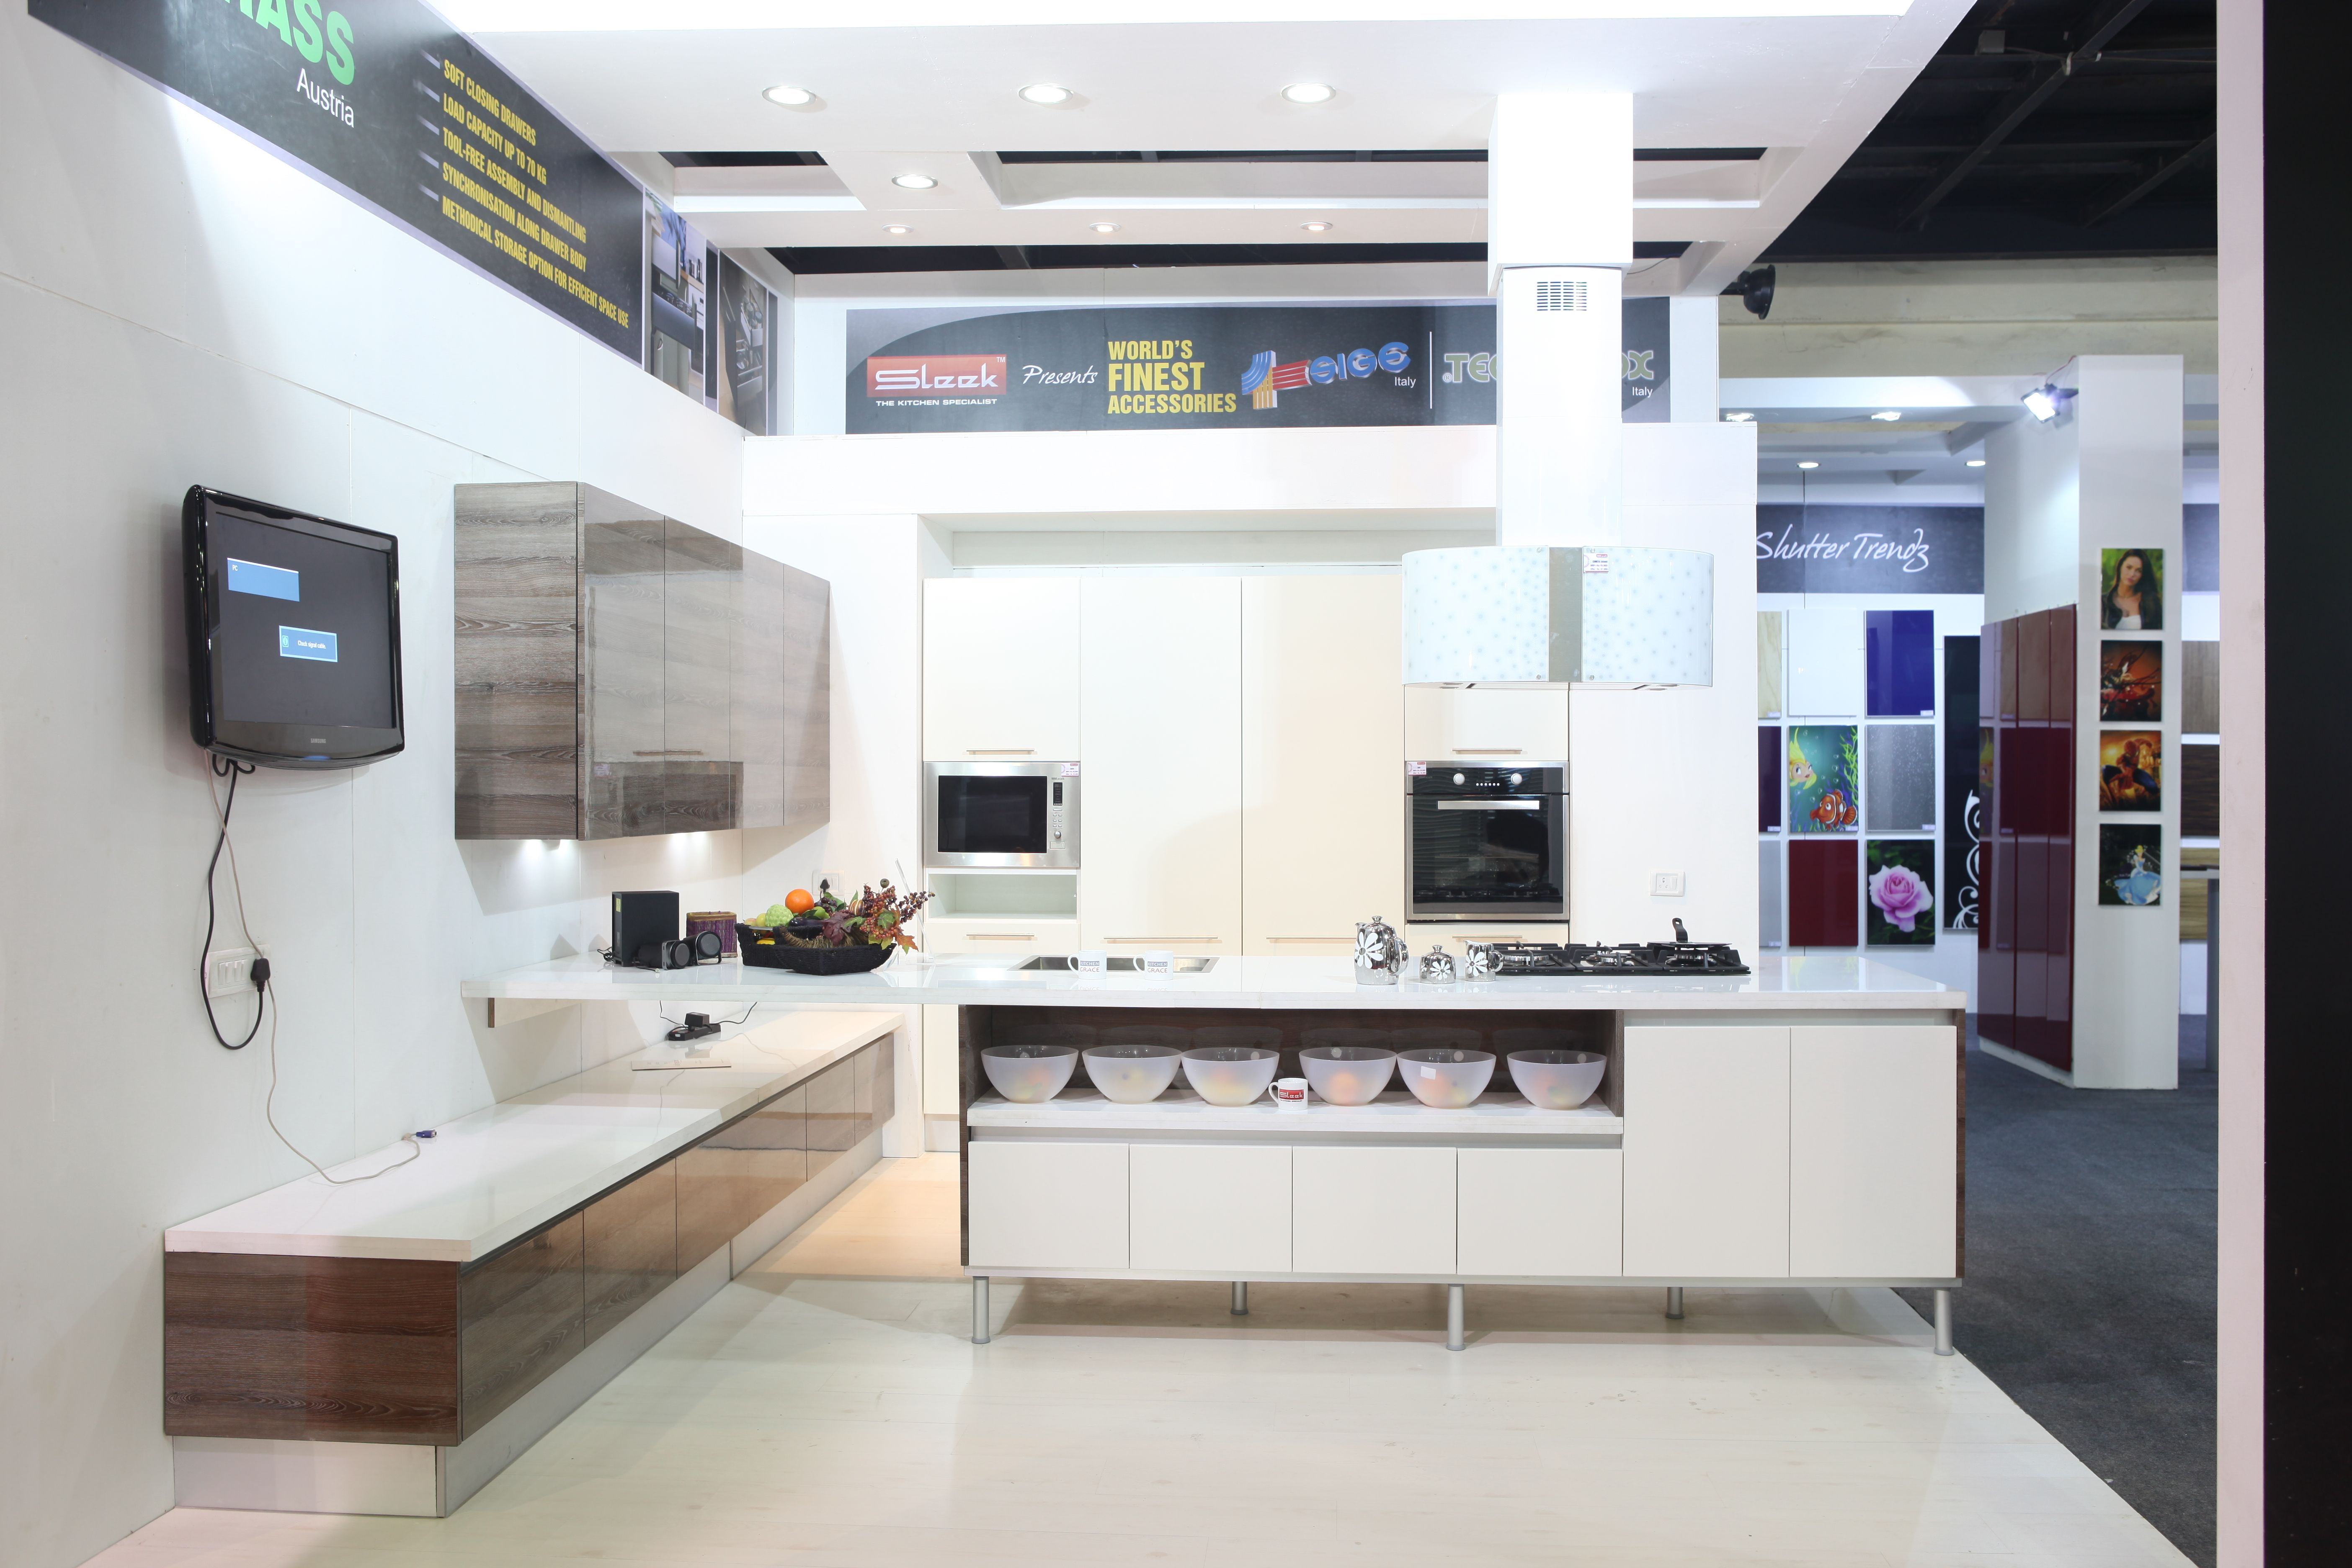 Http://www.sleekworld.com/micro/offers.html Offers Bringing Style U0026 Comfort  To The Art Of Cooking Sleek Modular Kitchens Literally Give You An  Unlimited ...